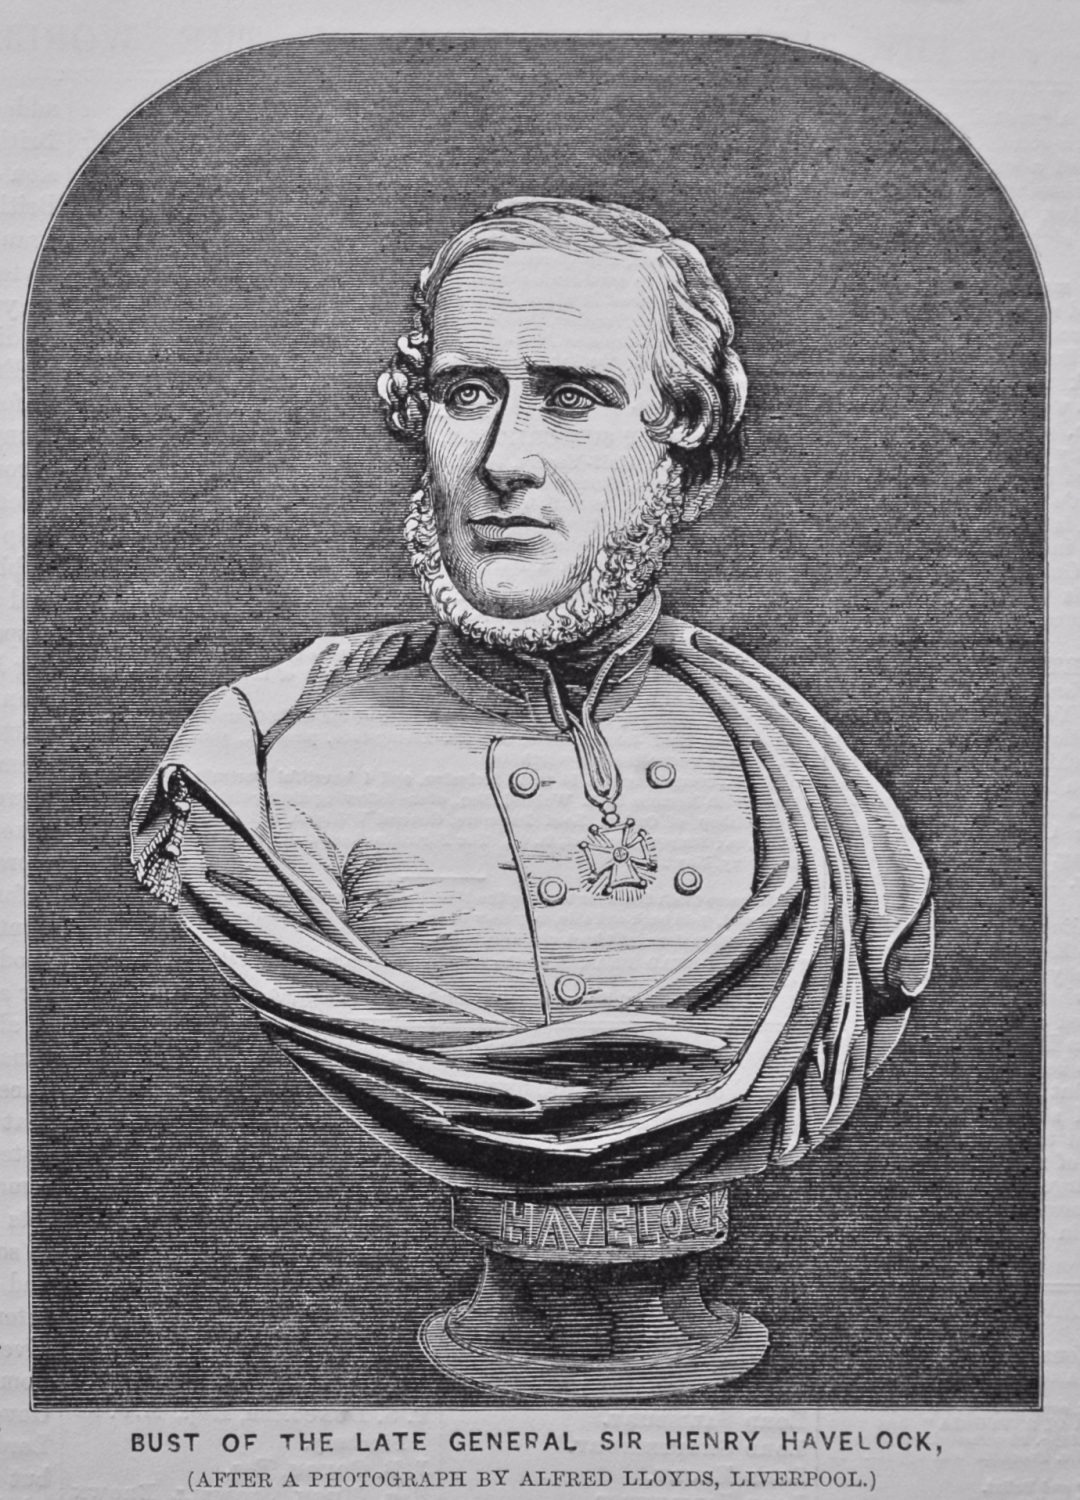 Bust of the Late General Sir Henry Havelock, (After a Photograph by Alfred